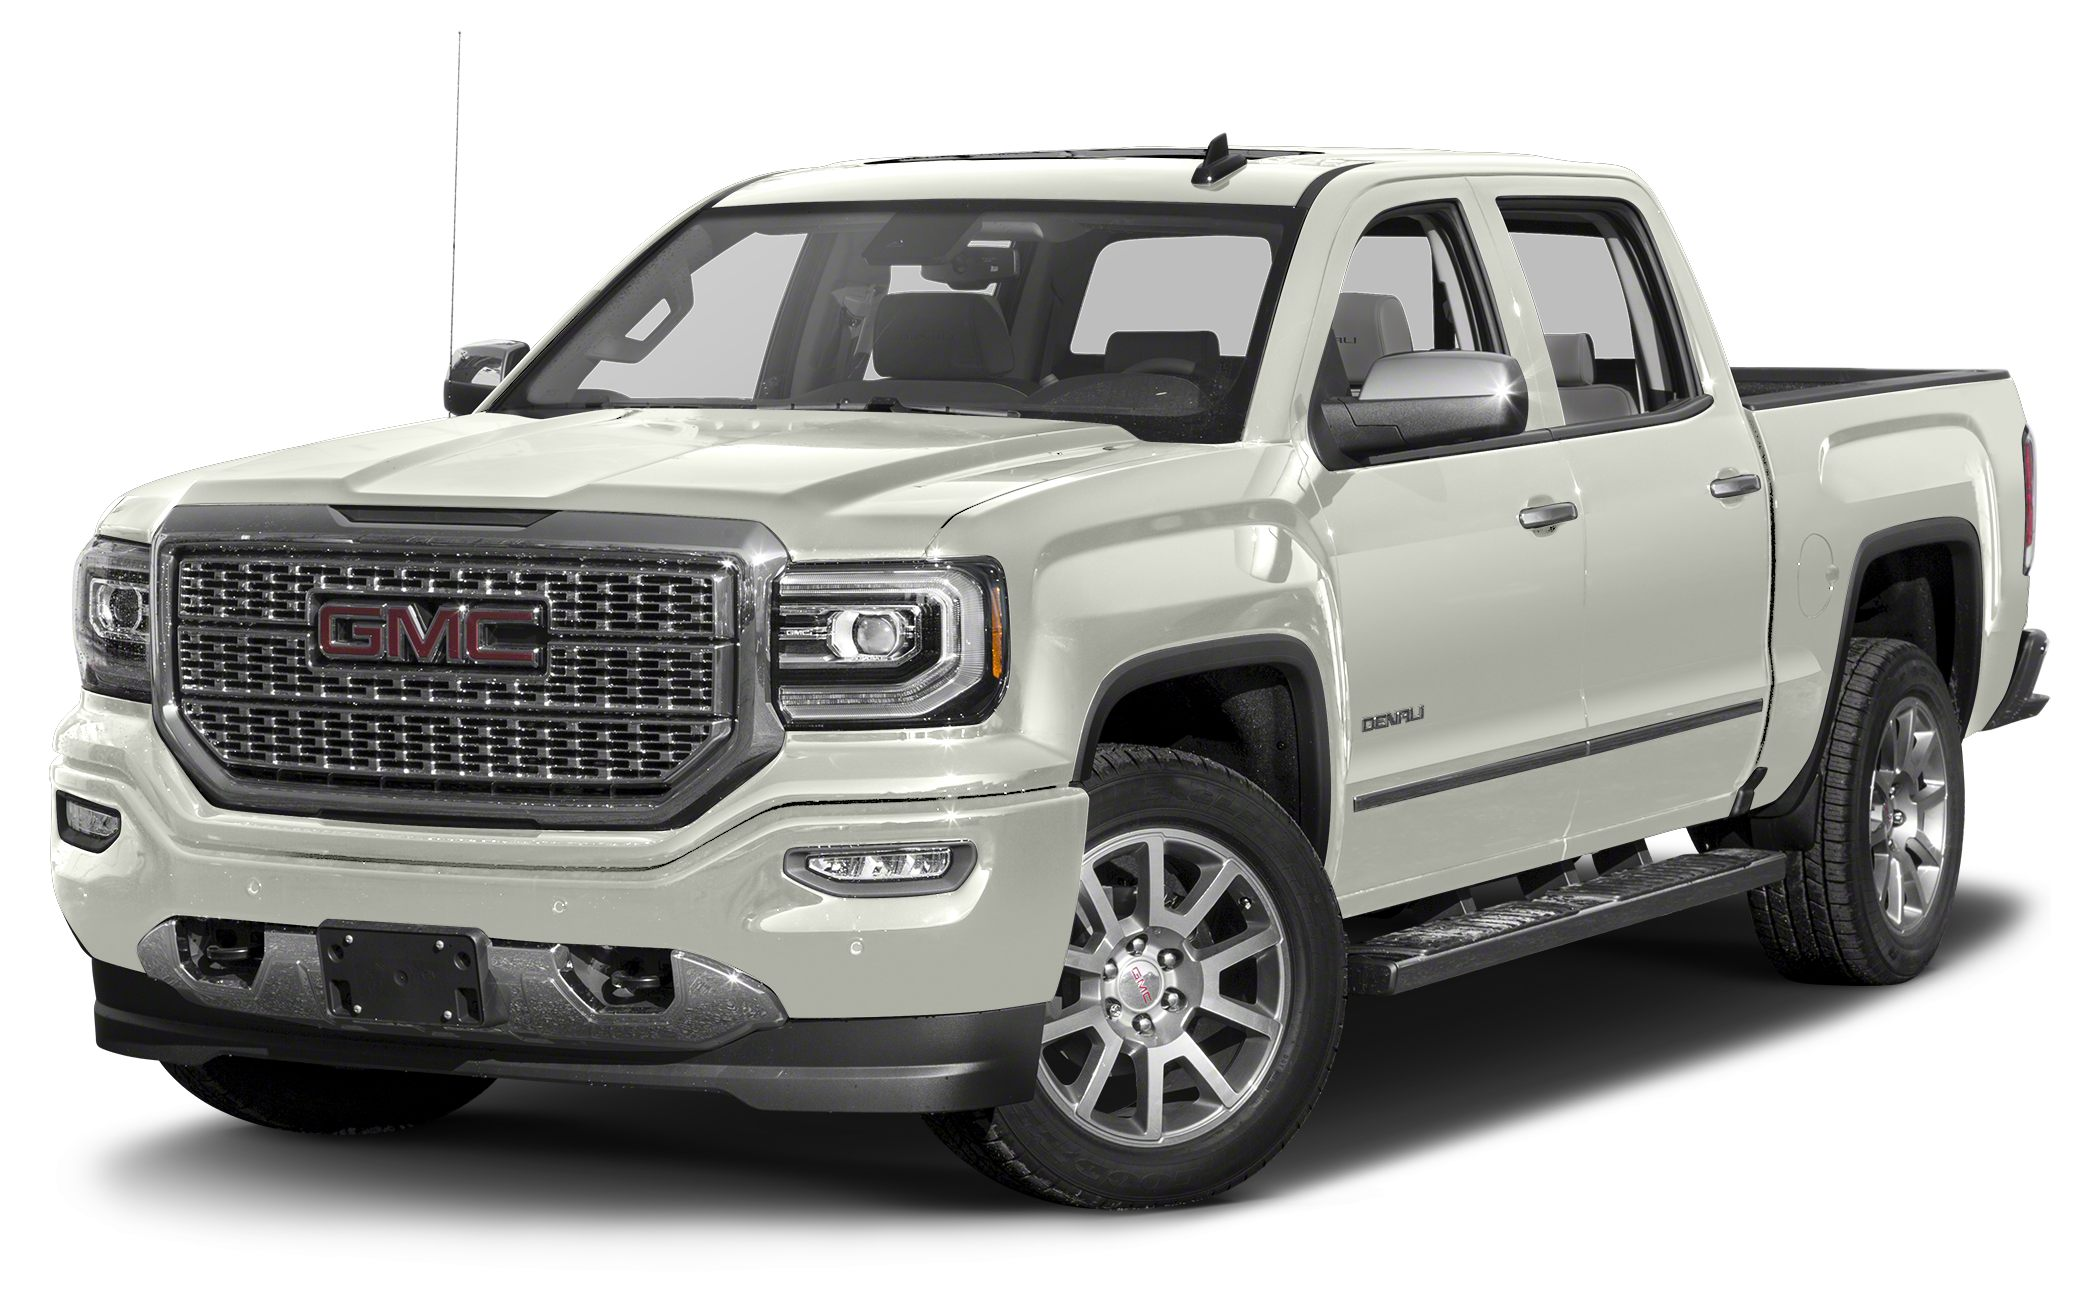 2018 GMC Sierra 1500 Denali Get ready to go for a ride in this 2018 GMC Sierra 1500 Denali which